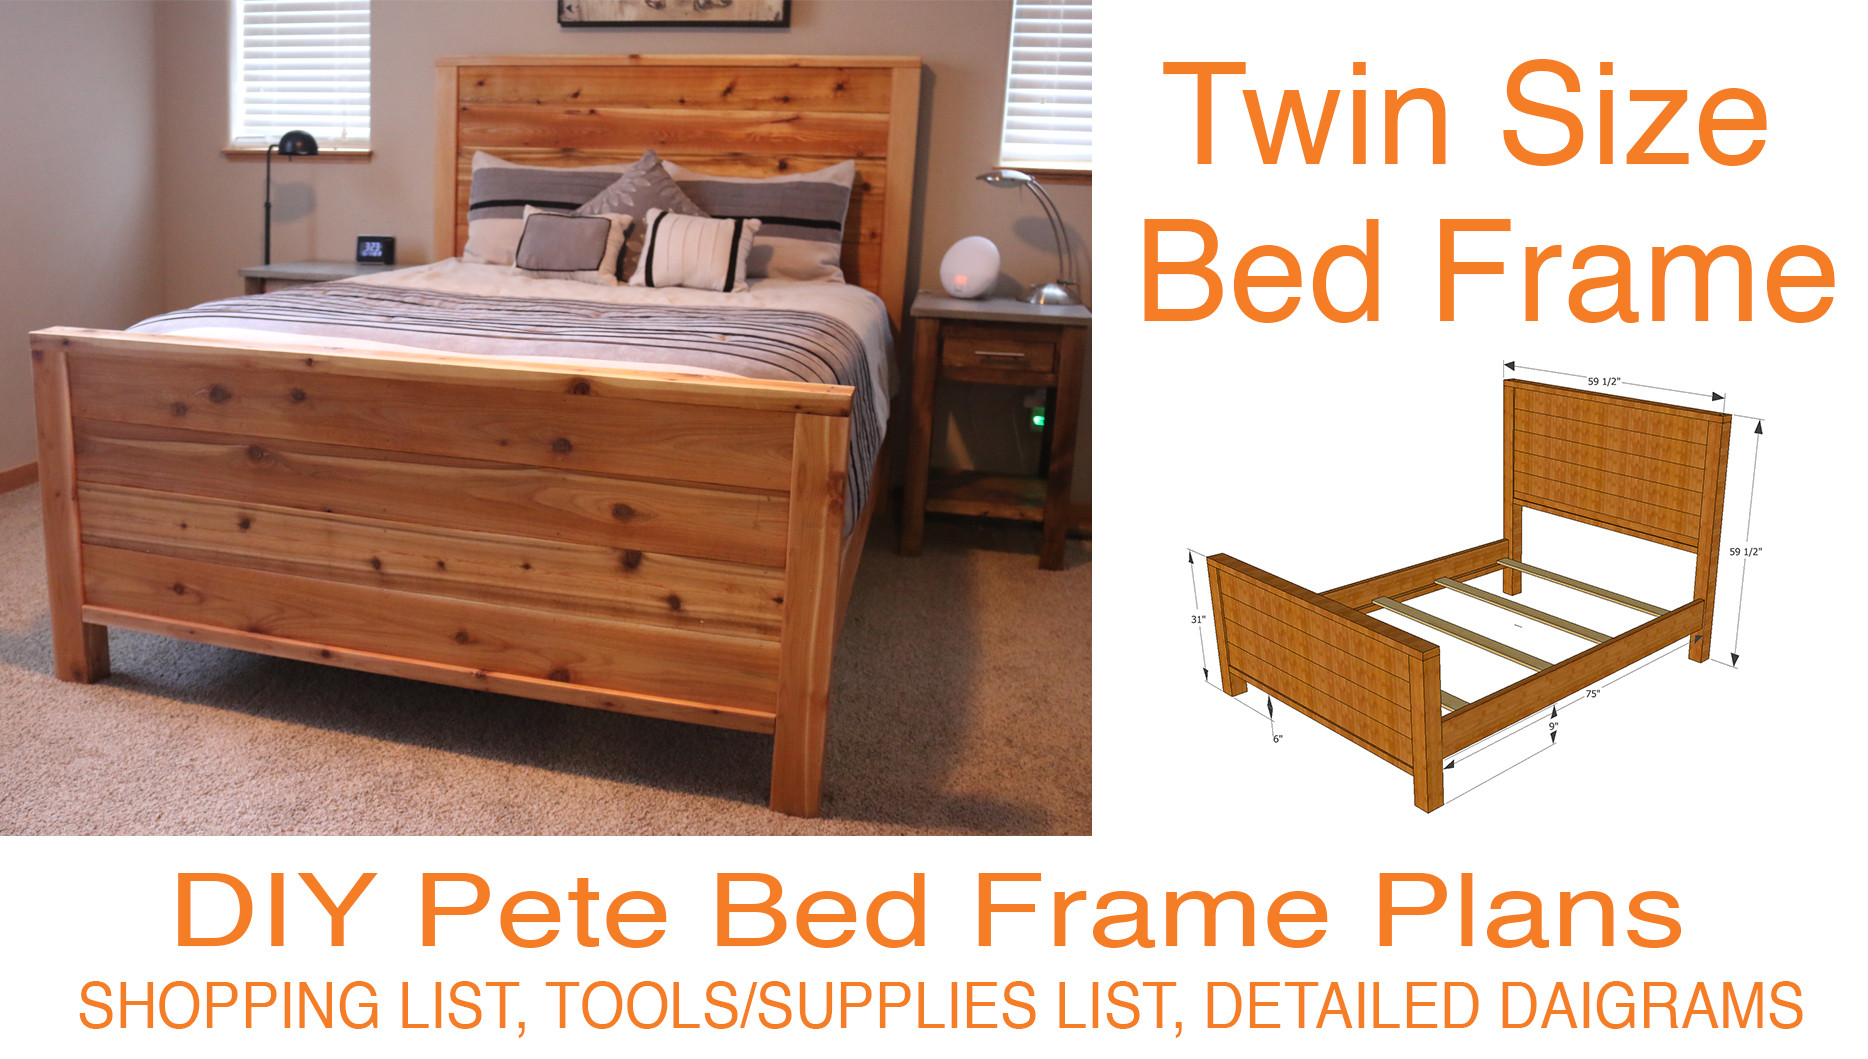 DIY Twin Bed Frame Plans  DIY Bed Frame Plans How to Make a bed frame with DIY Pete